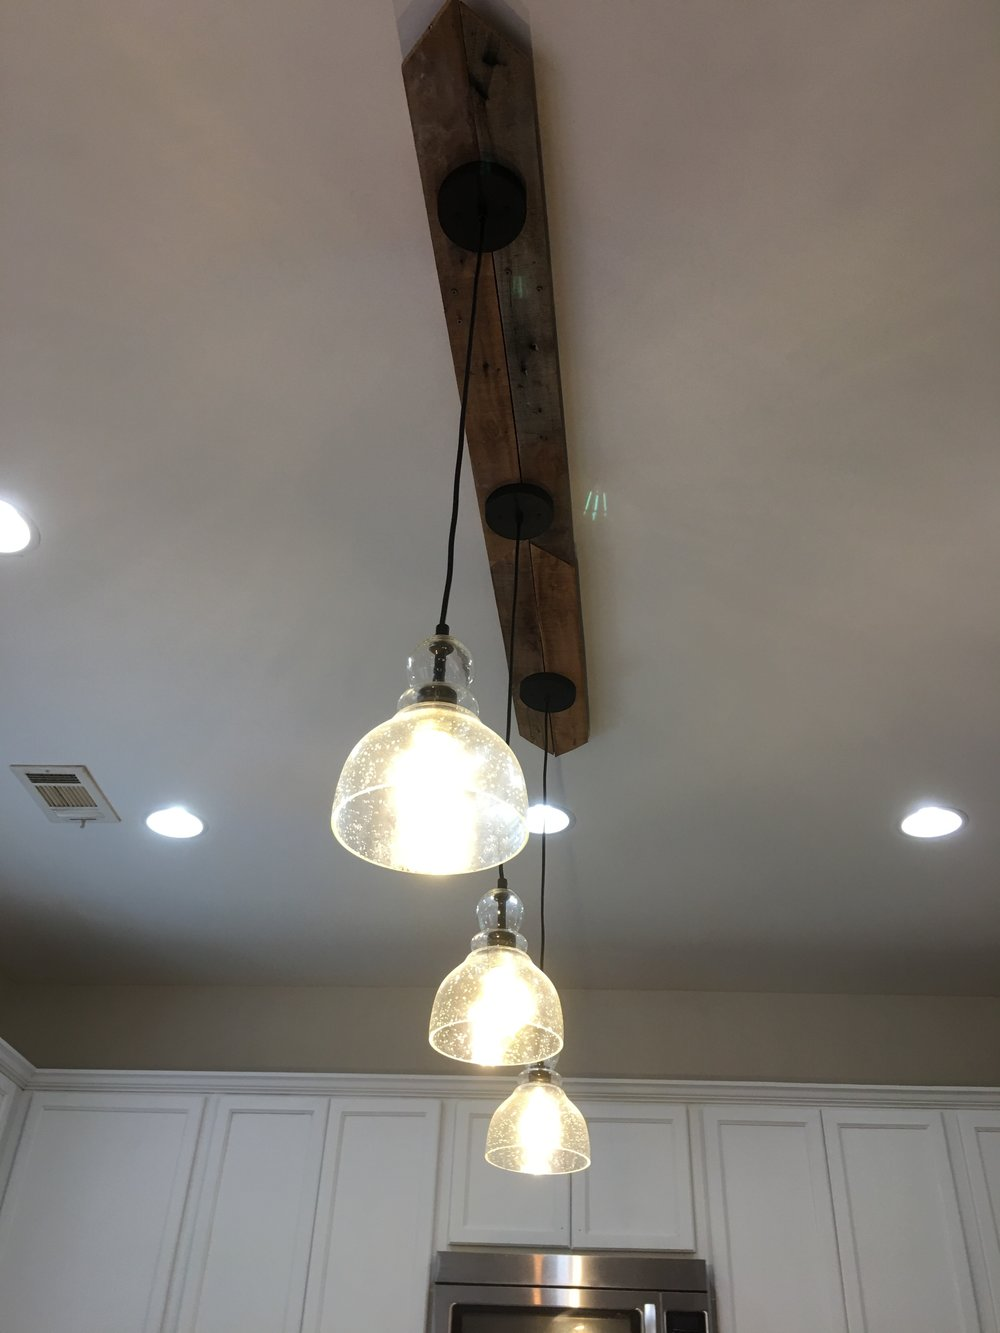 Can I Make A Three Pendant Light Fixture With Only One Electrical Lamp Lights Wiring We Used Tweezers To Reconnect The Black Wiretried Againand This Is What It Looked Like